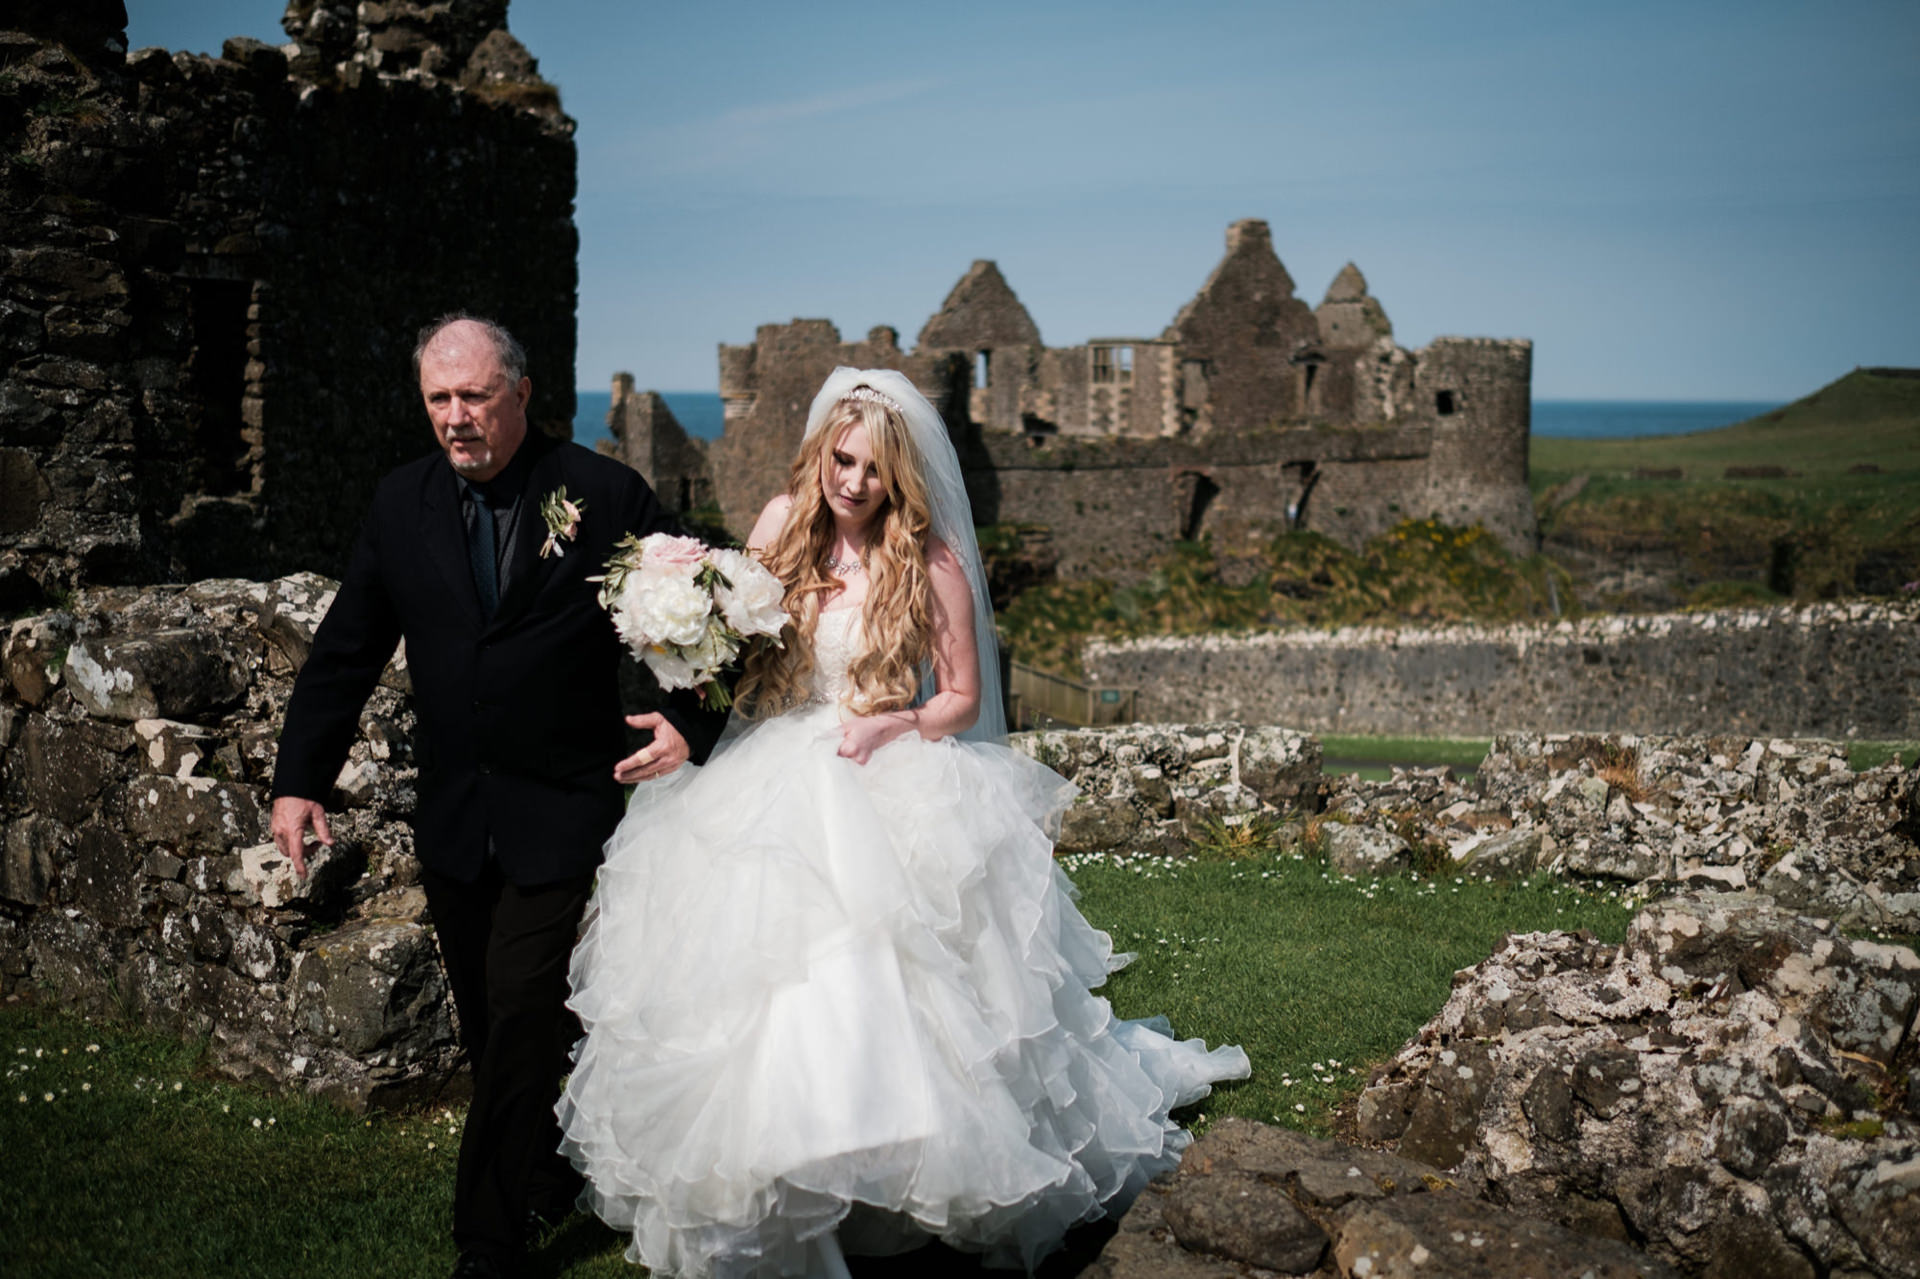 Dunluce Castle, Northern Ireland Elopement Couple Image | the bride and her father make their way through the ruins of the castle